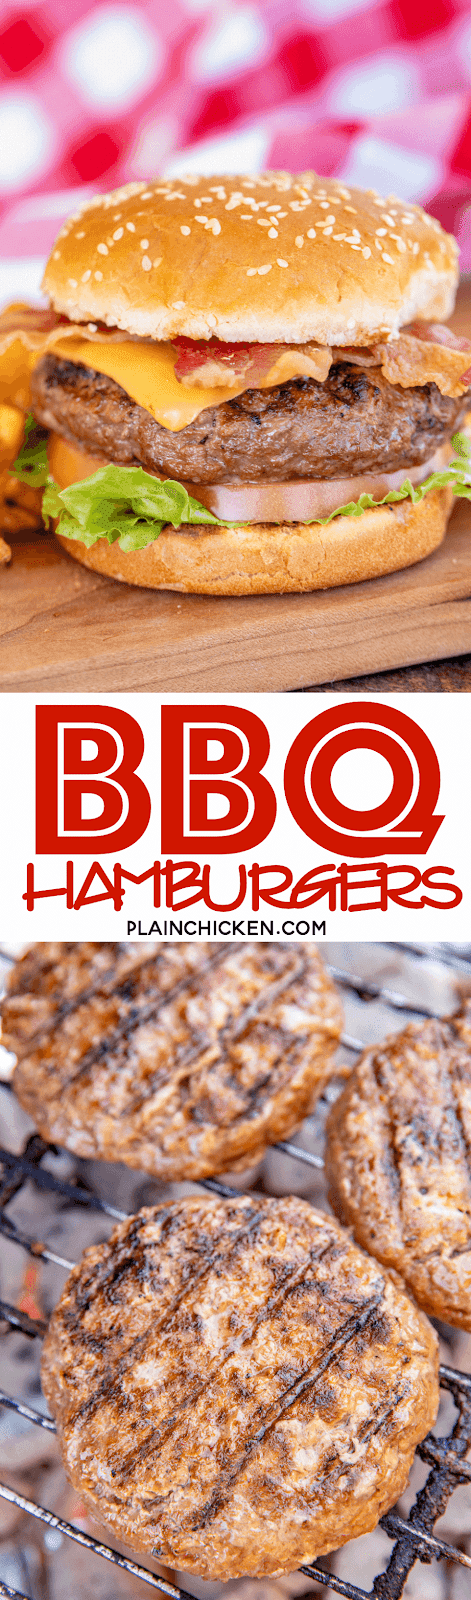 Grilled Bbq Burgers Plain Chicken